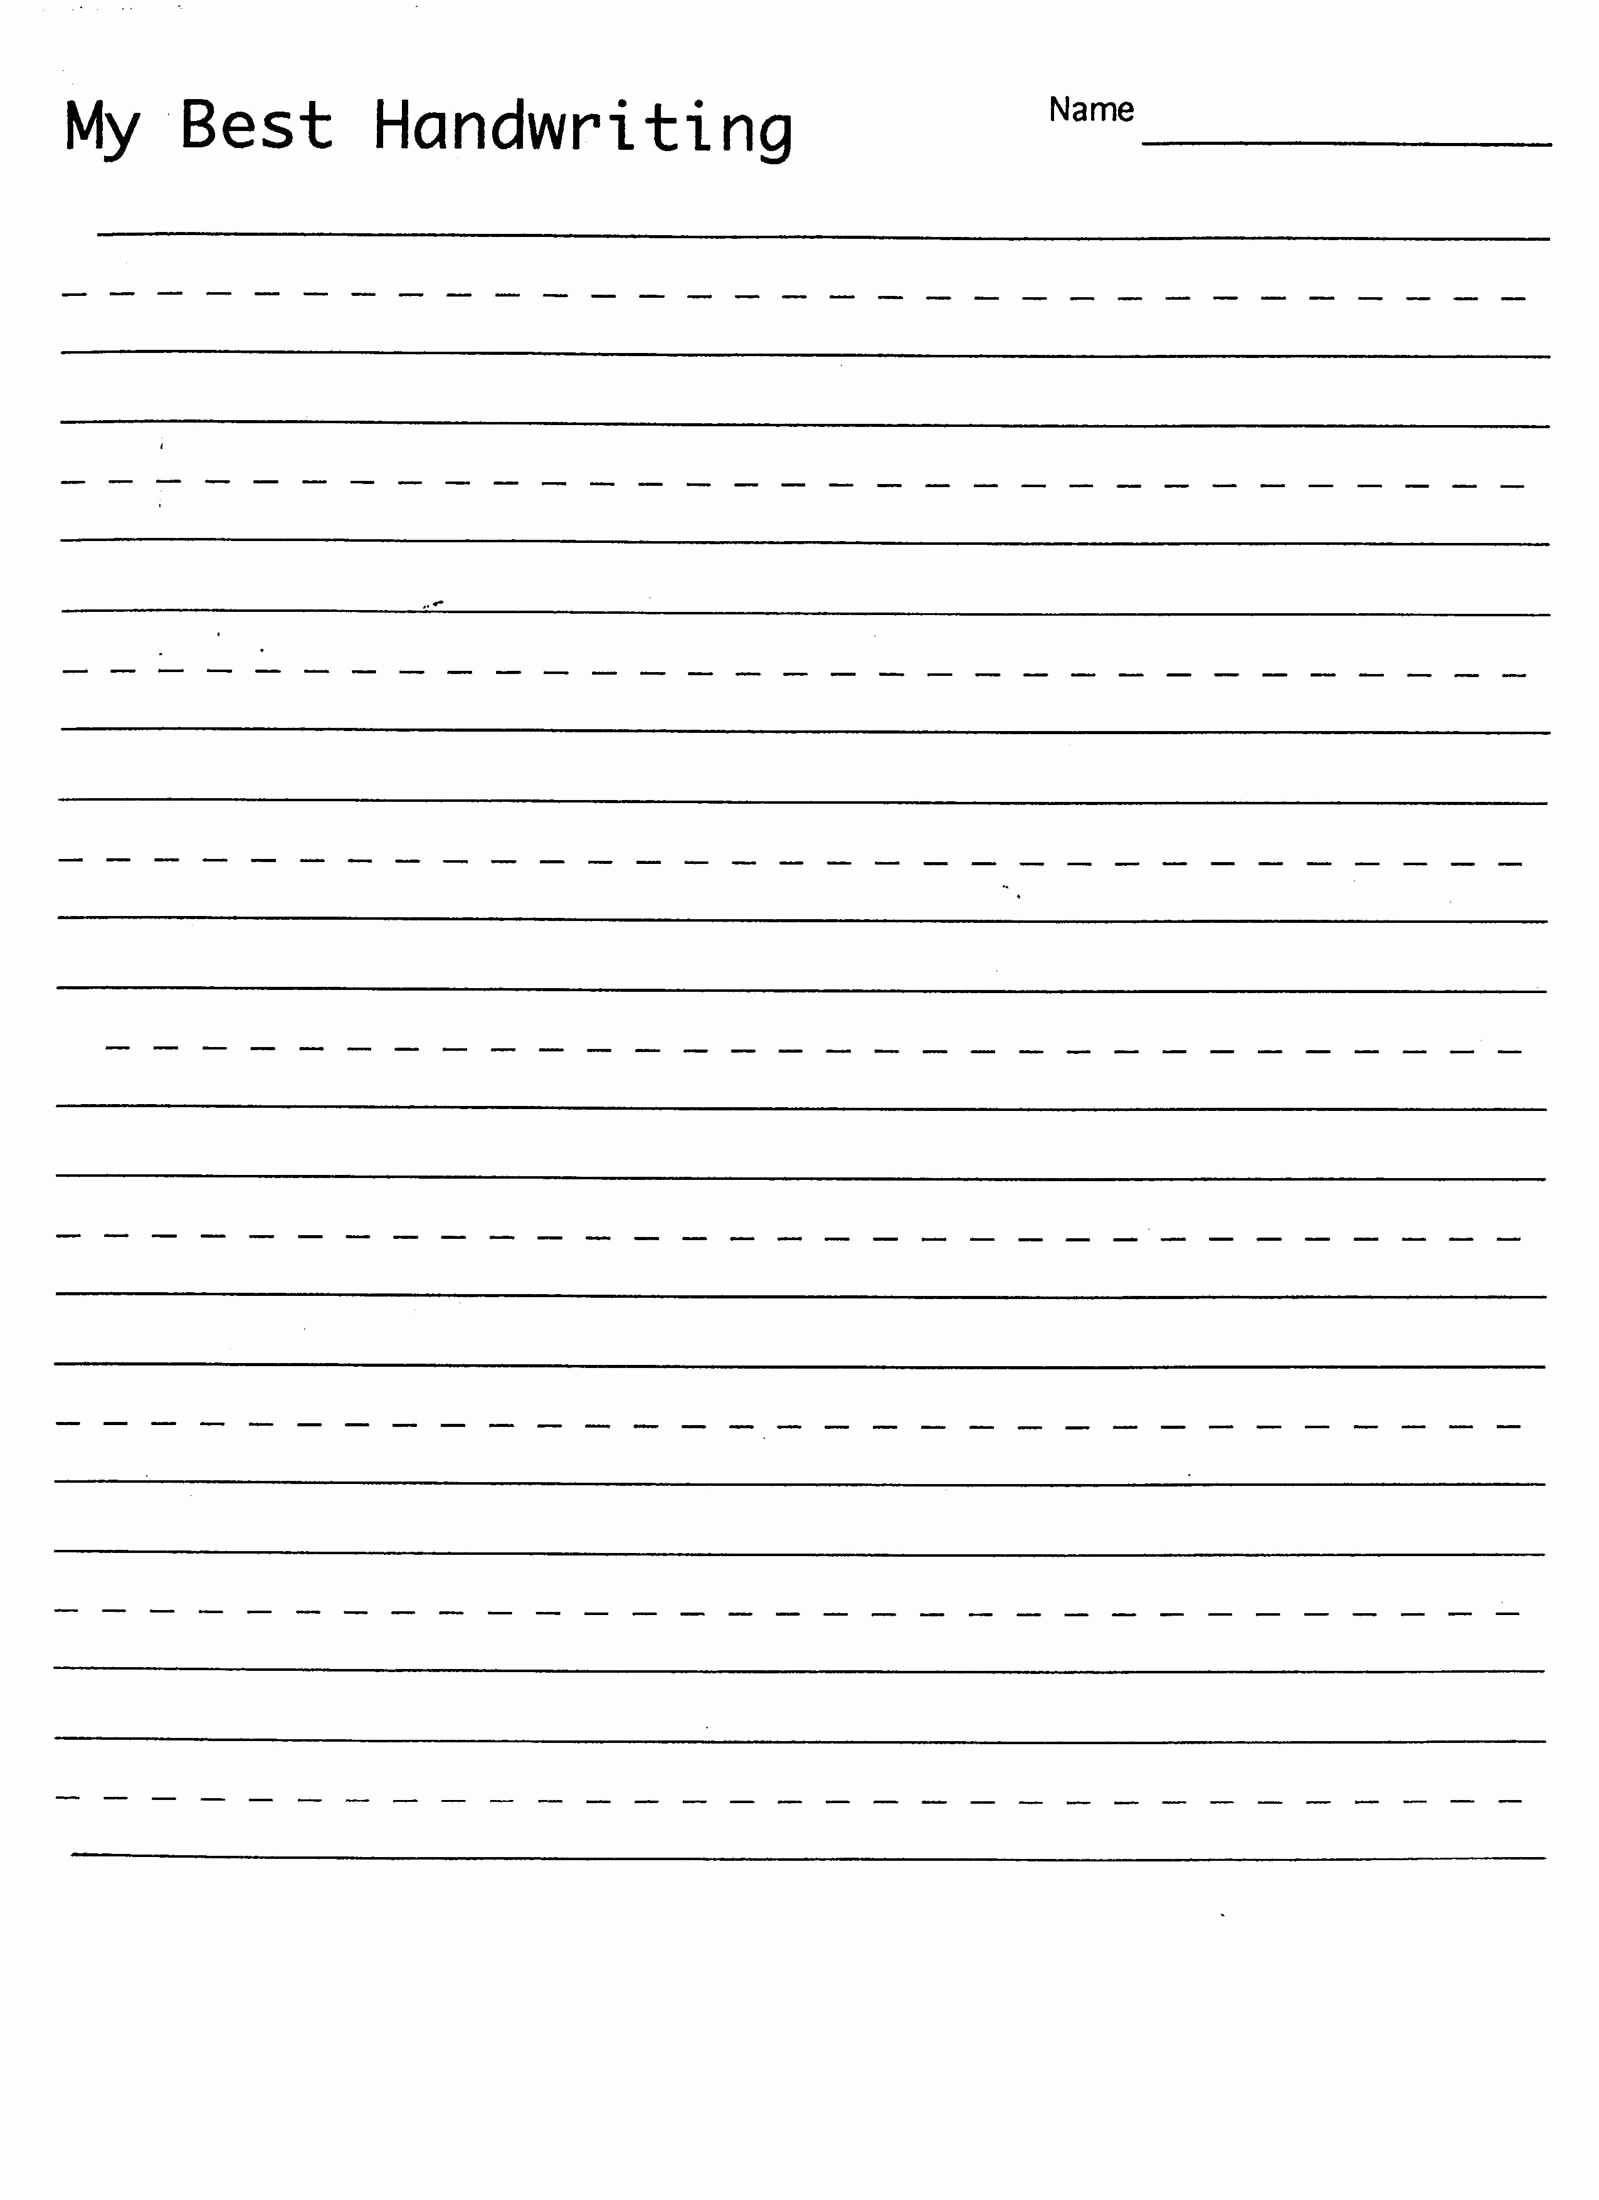 Lined Paper for Handwriting Practice Luxury Best Printable Handwriting Sheets